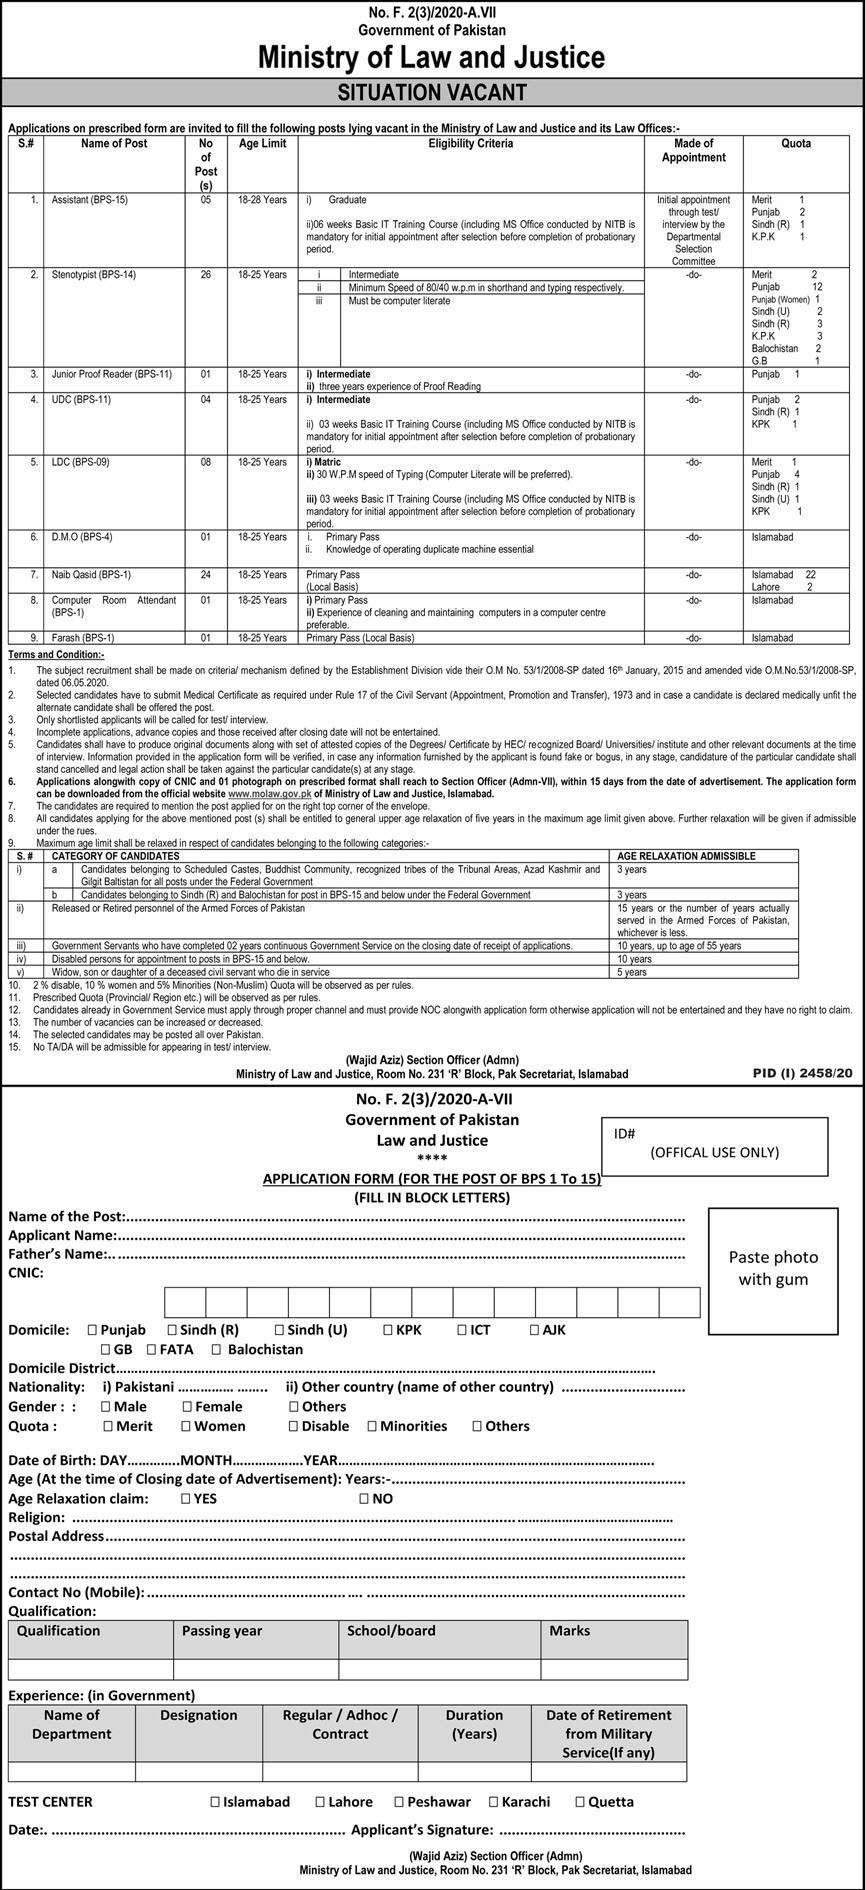 Latest Ministry of Law & Justice Jobs 2020 | Jobs In Pakistan 2020